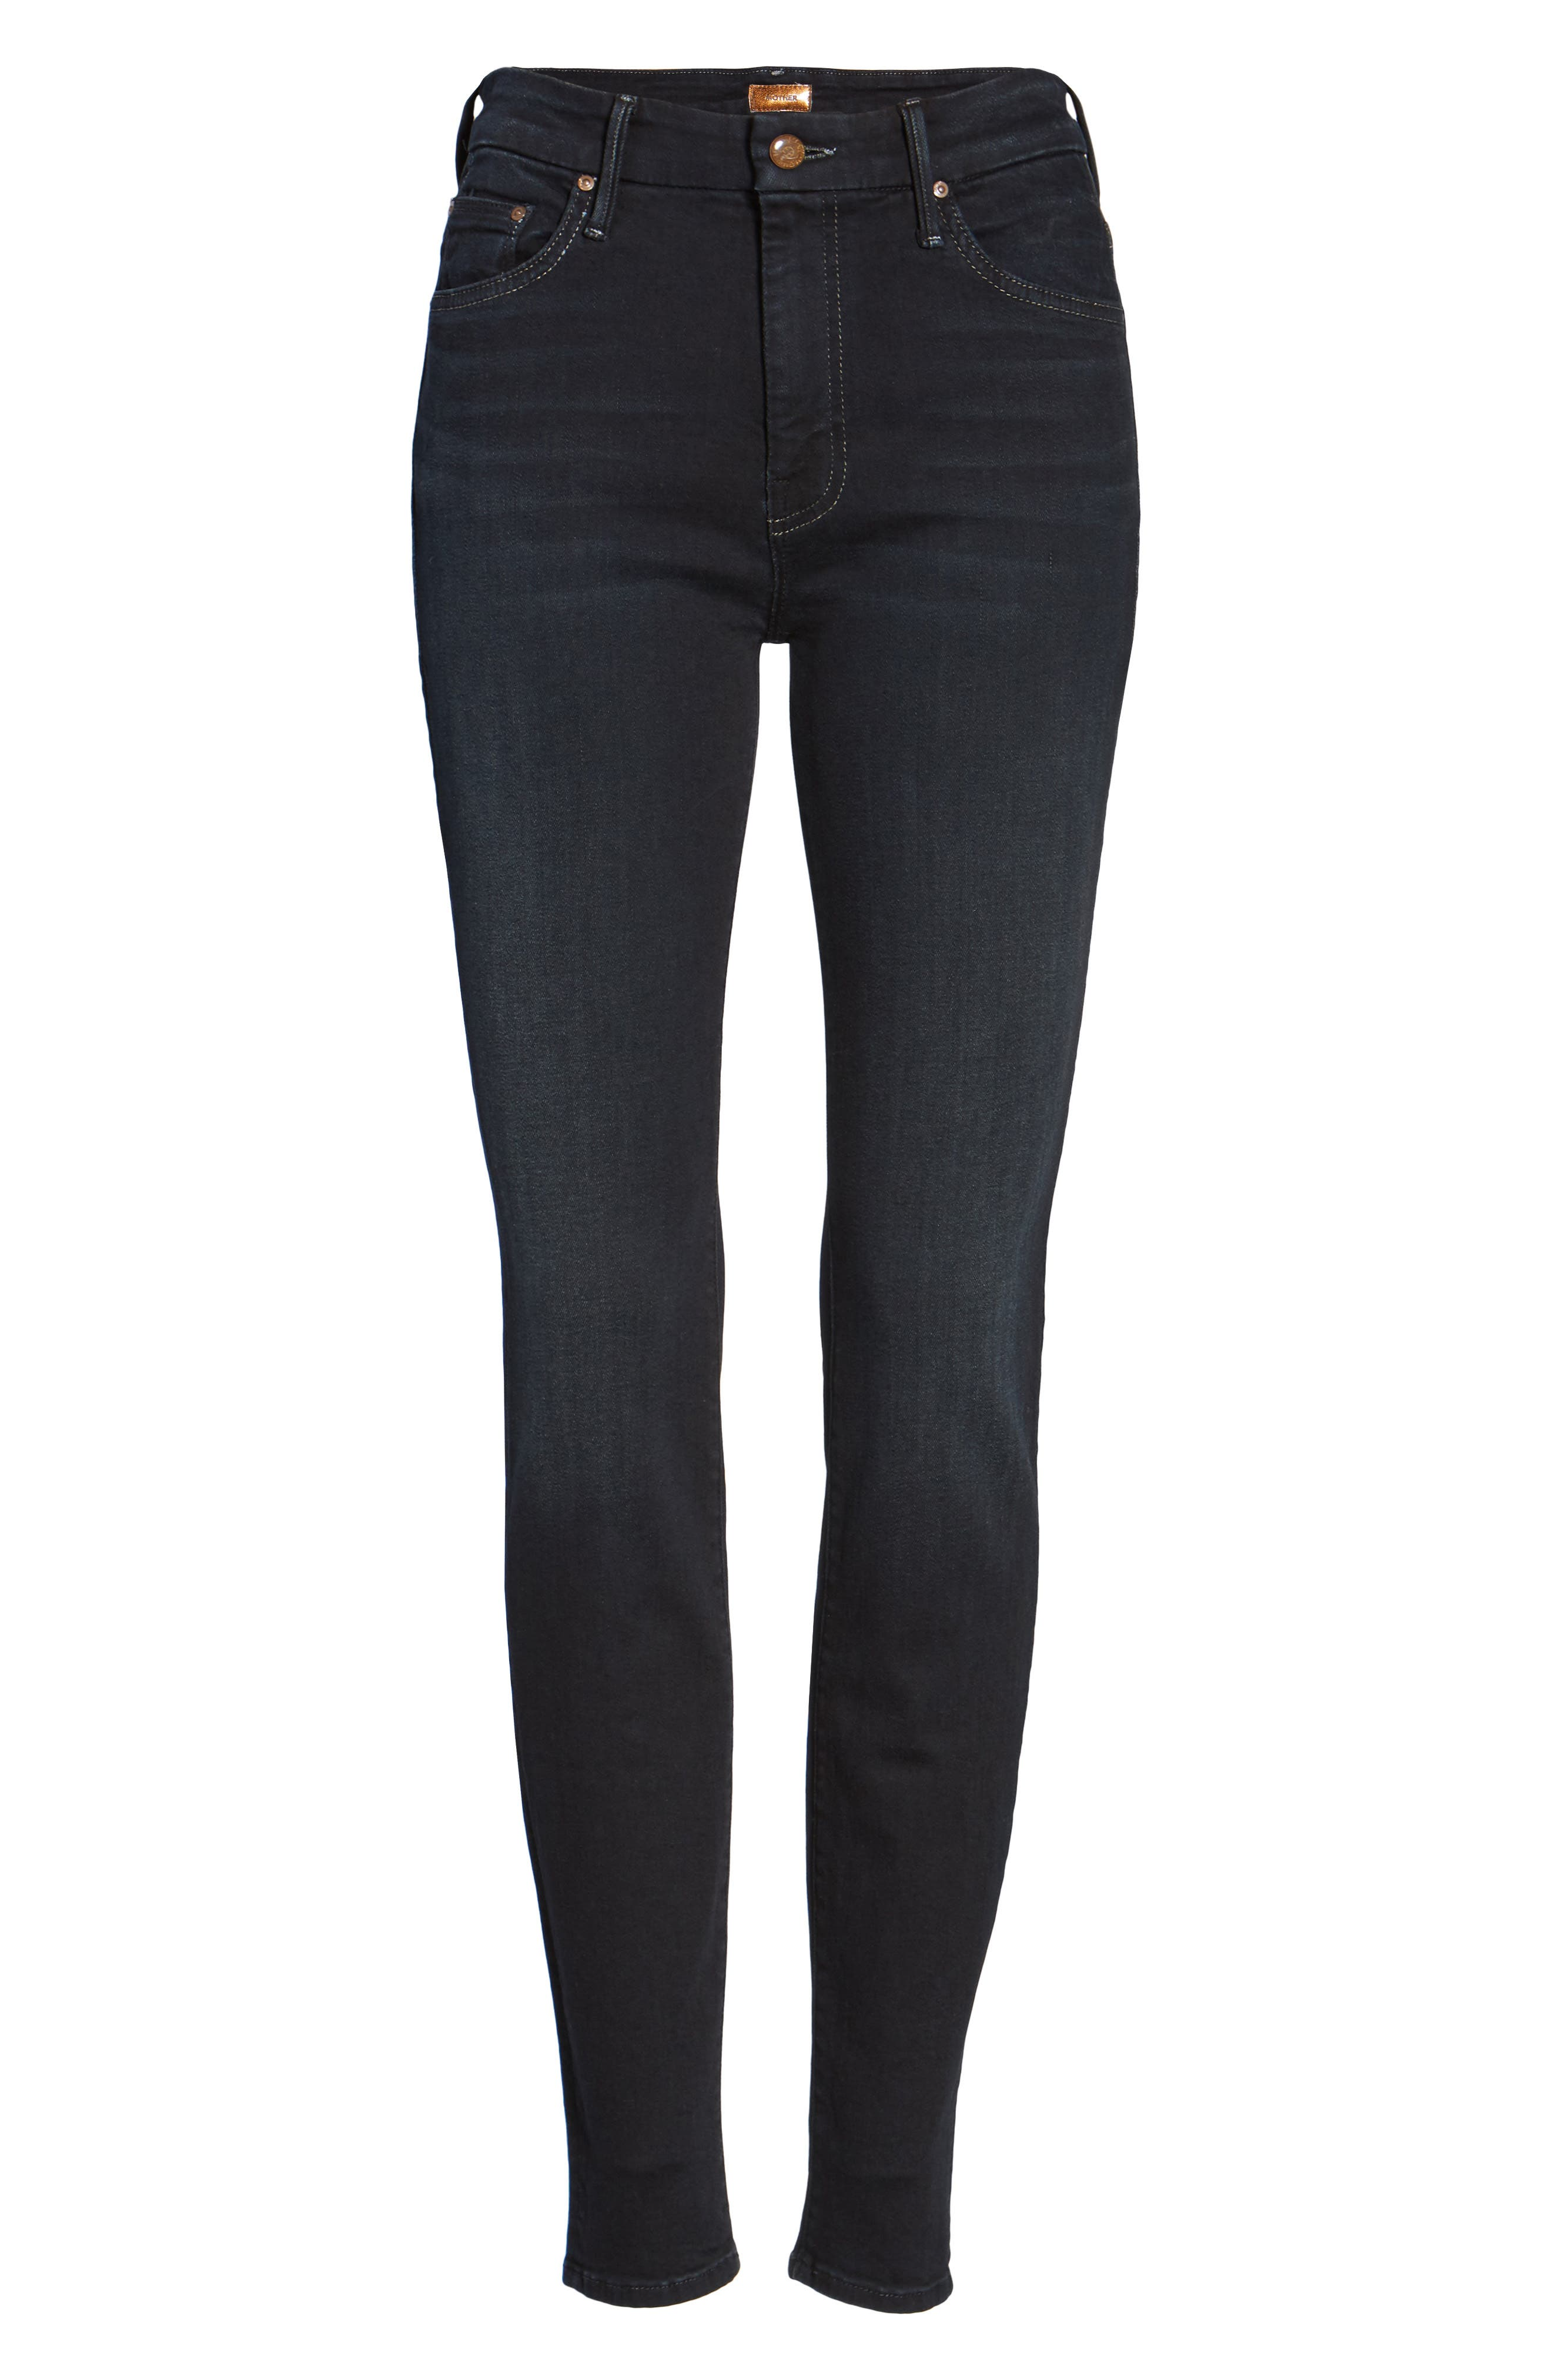 MOTHER, 'The Looker' High Rise Skinny Jeans, Alternate thumbnail 7, color, COFFEE TEA OR ME